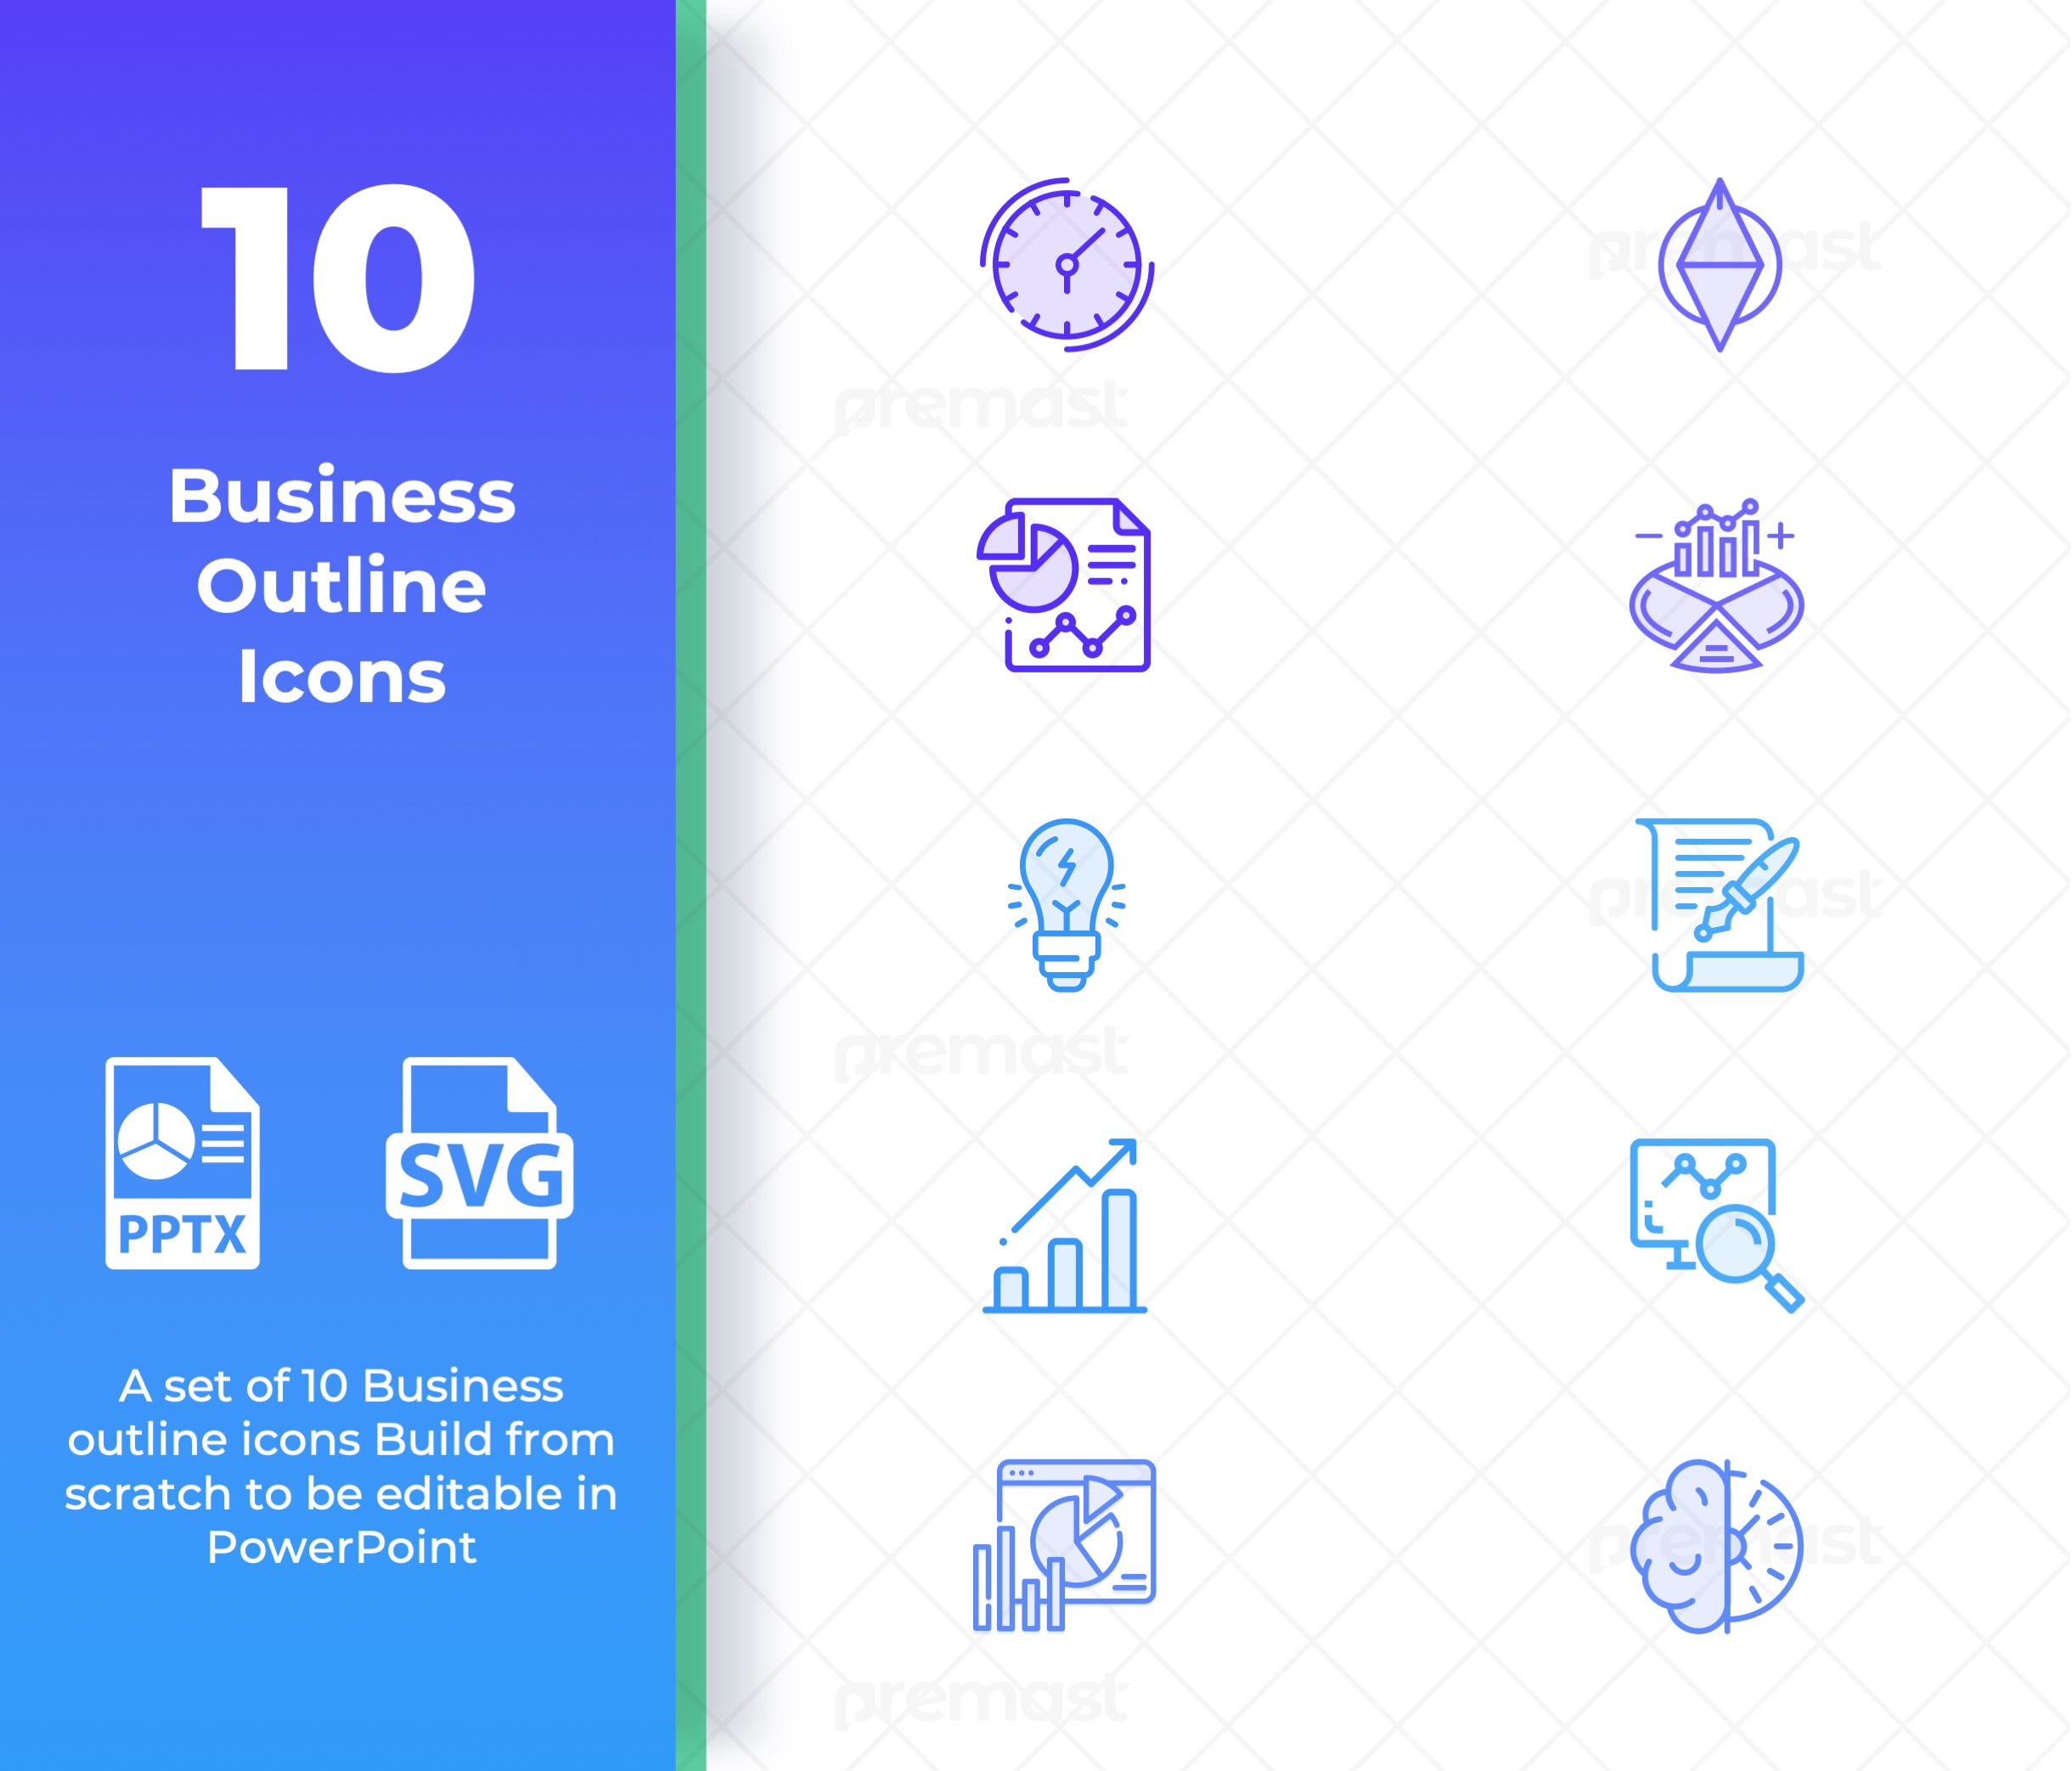 Outline Business Icons for PowerPoint